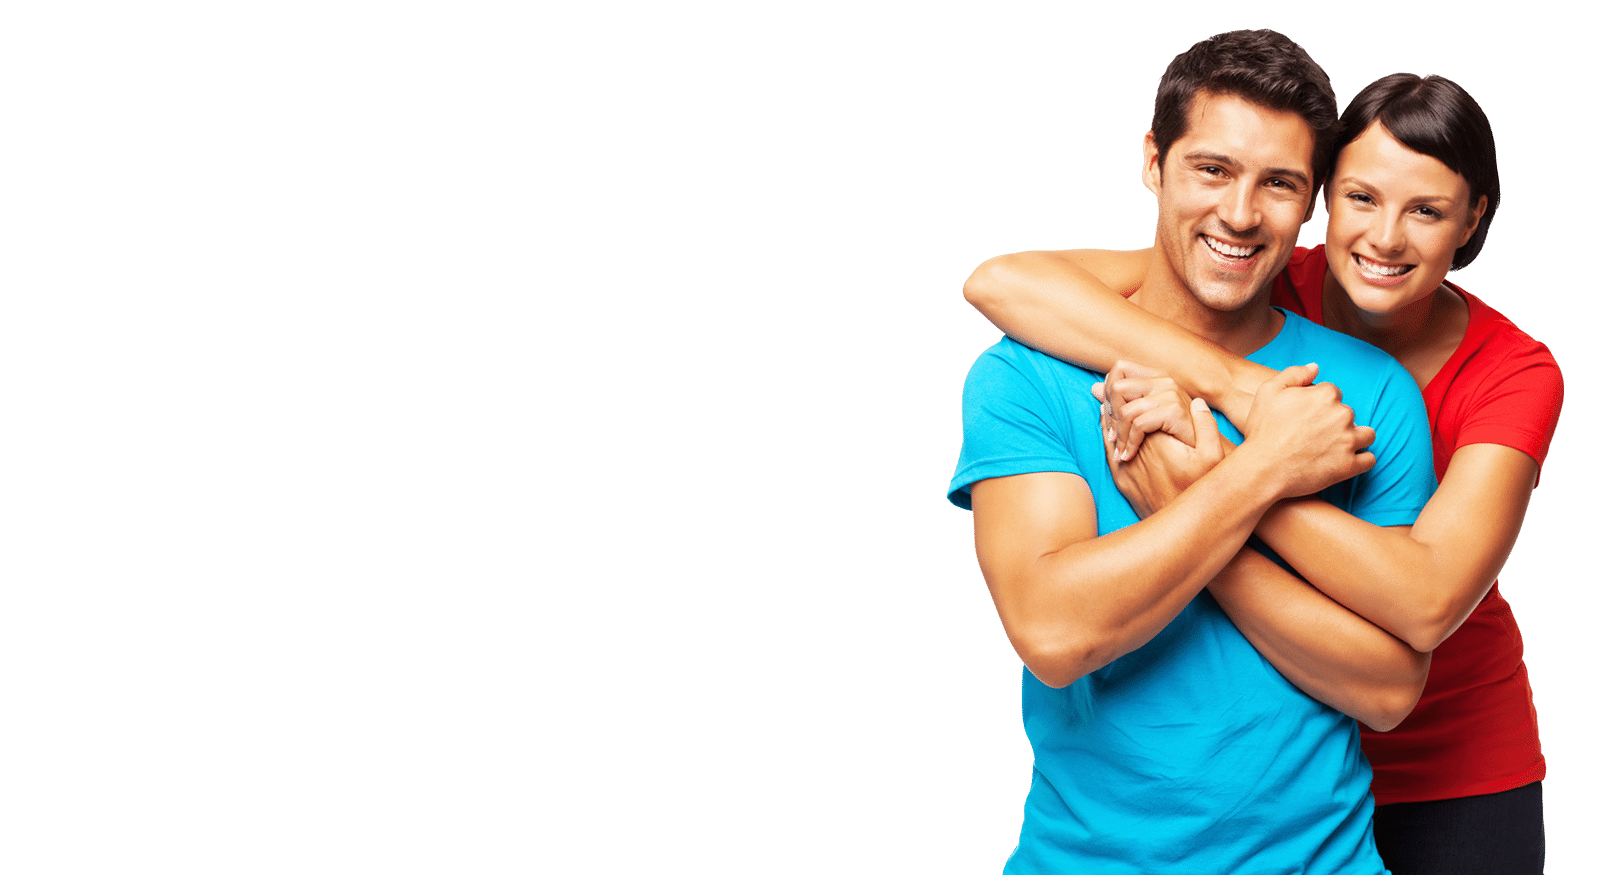 Young couple png. Remedial relaxation massage services